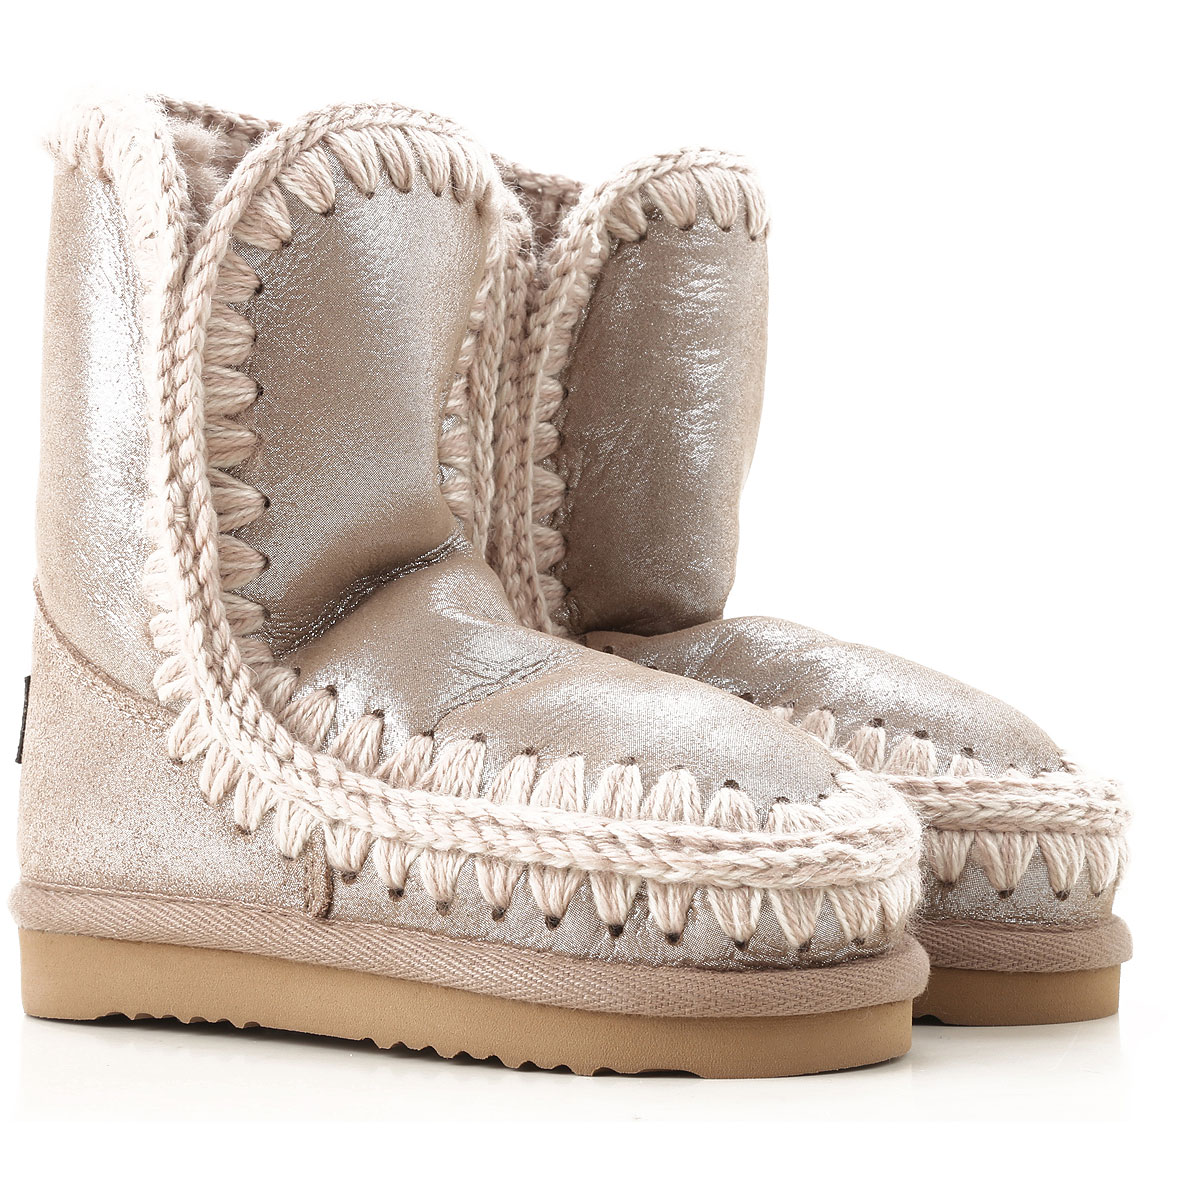 Image of Mou Kids Shoes for Girls, Glitter Bronze, Leather, 2017, 24 25 26 27 28 29 30 31 32 33 34 35